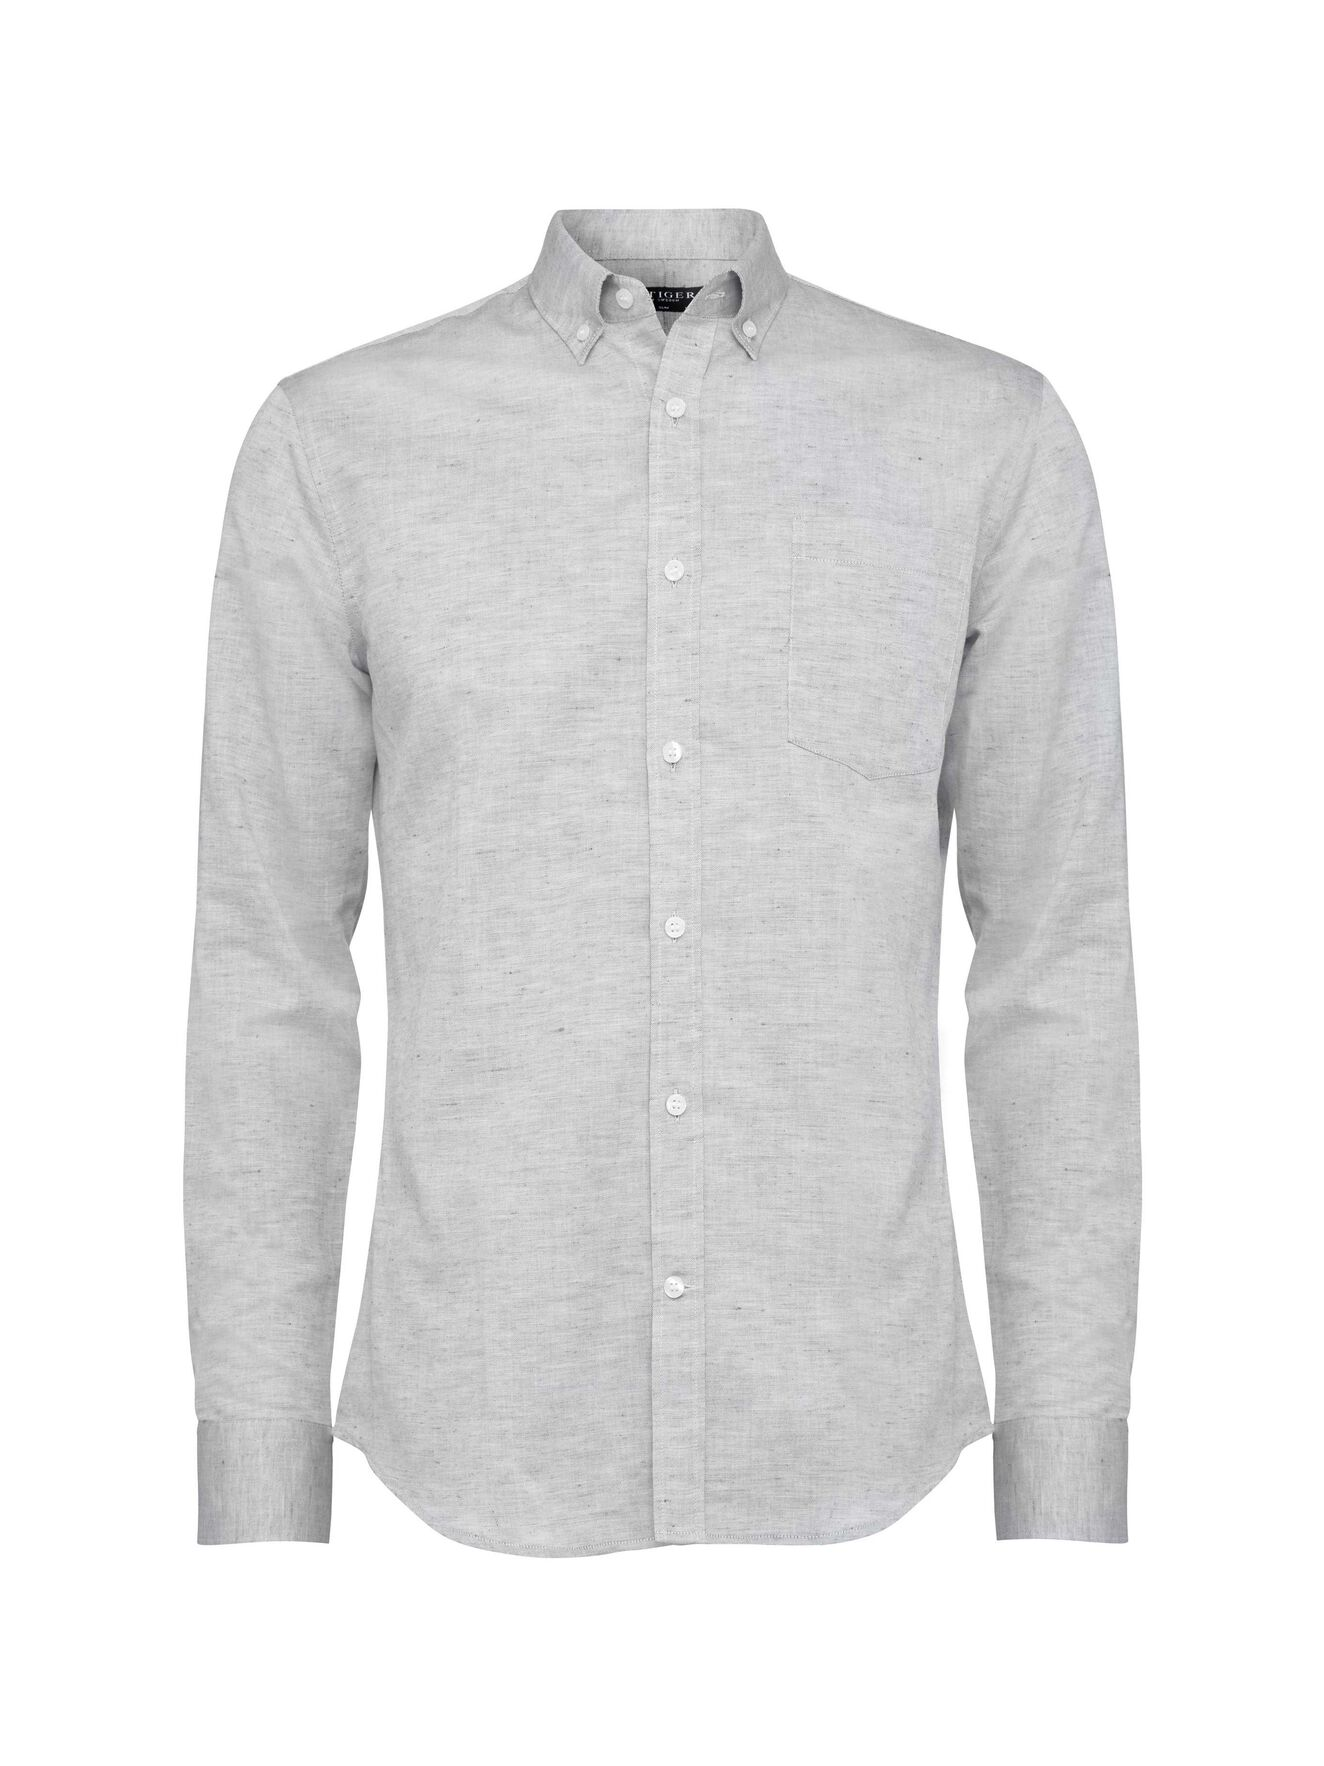 Donald 4 Shirt in Dark White from Tiger of Sweden